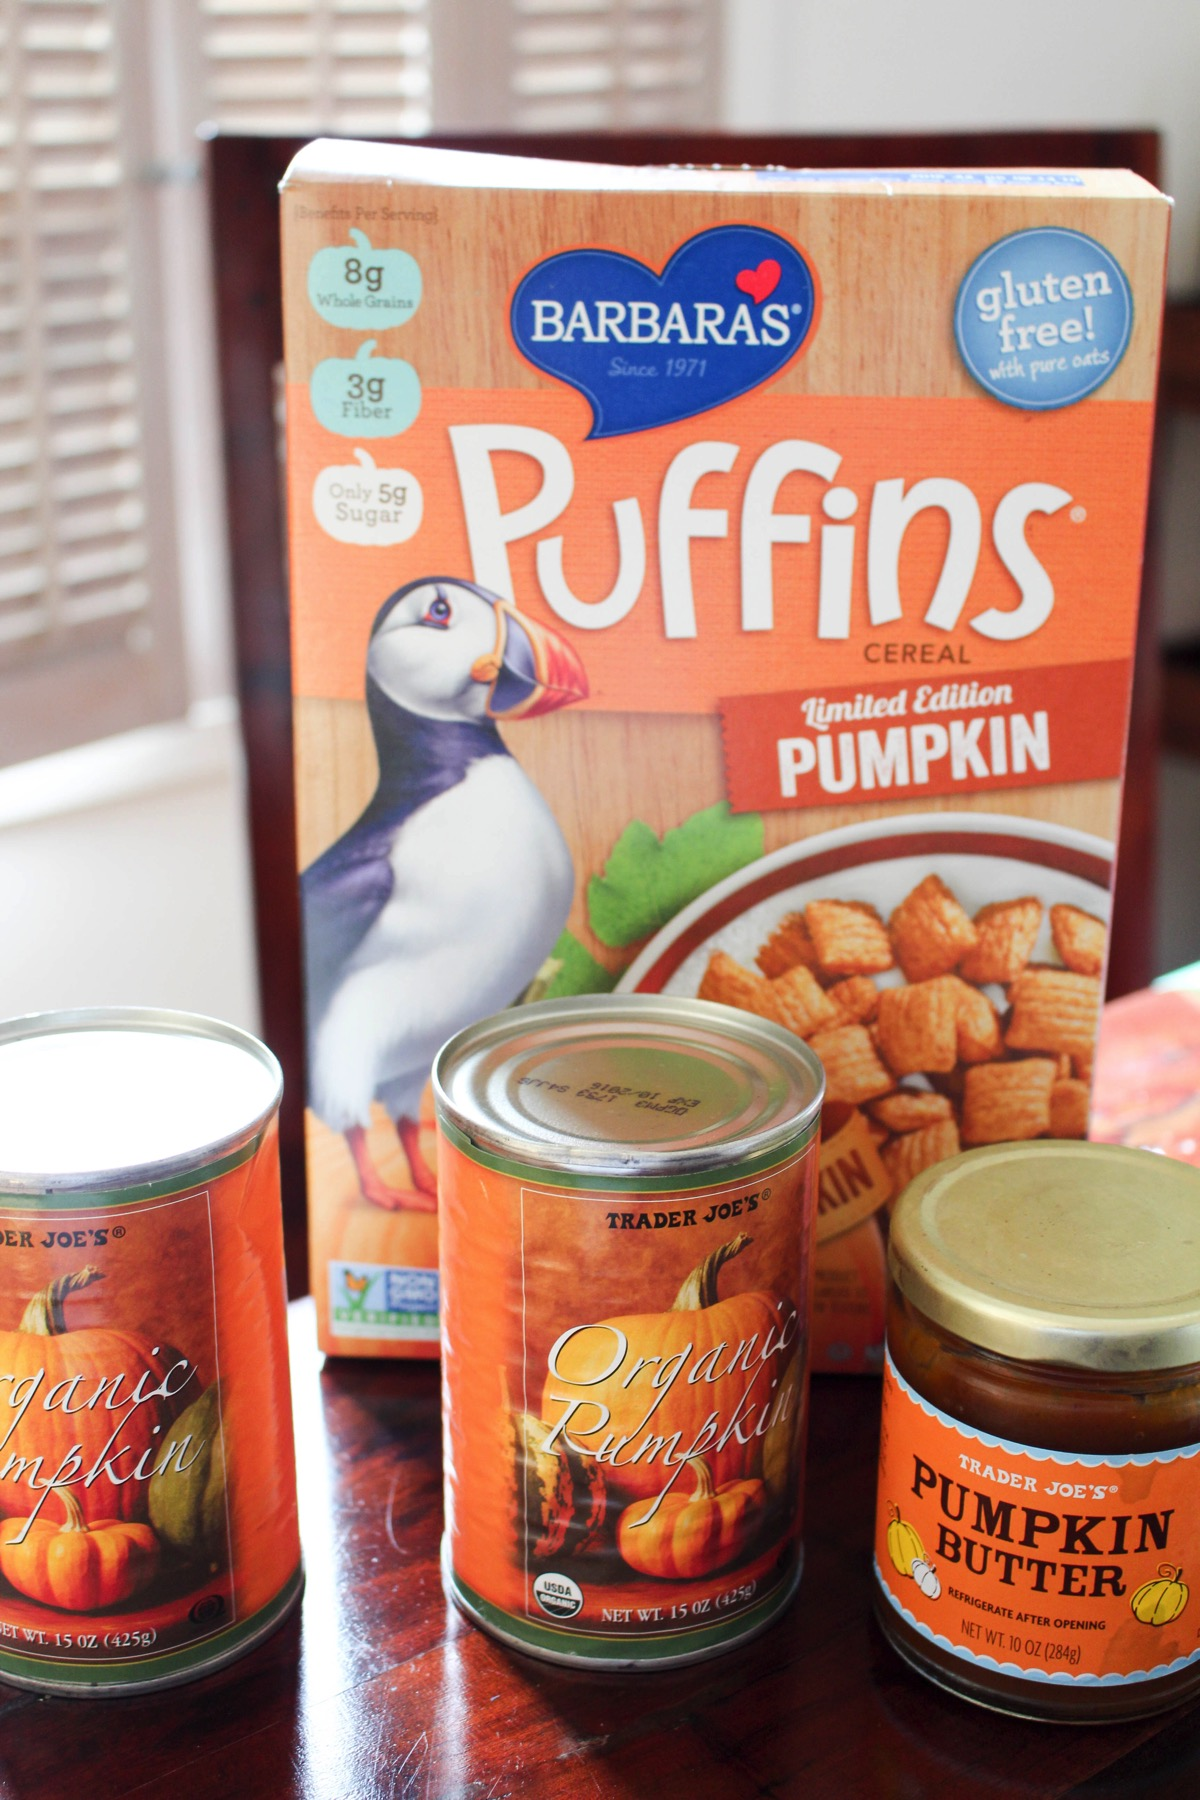 Trader Joe's pumpkin goods--Pumpkin Puffins, Canned Pumpkin and Pumpkin butter